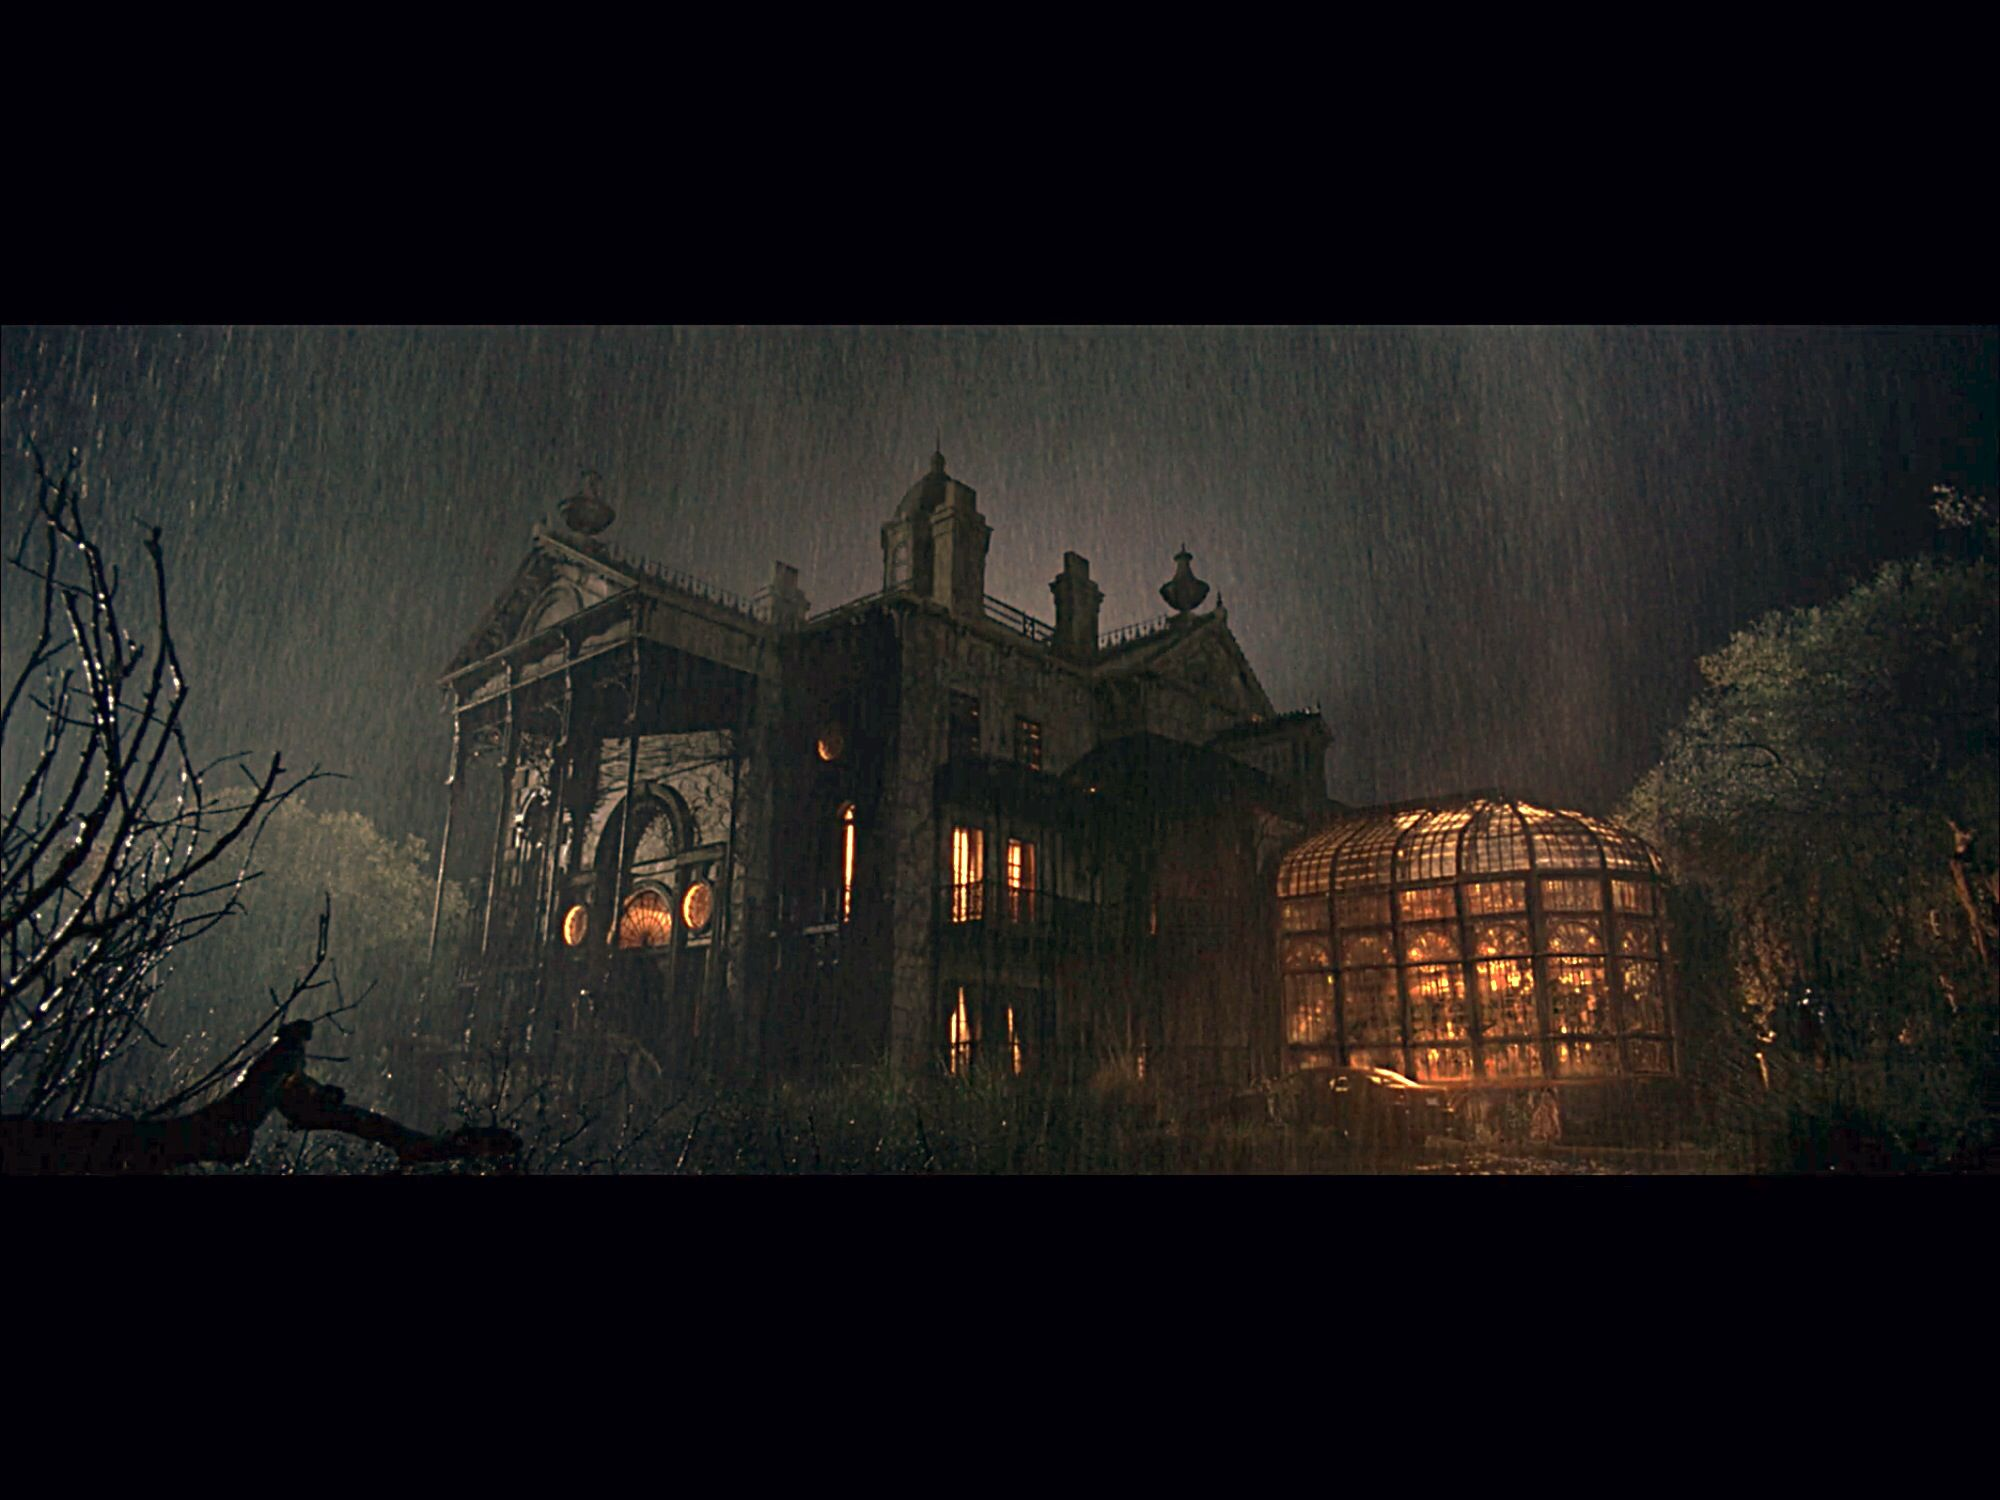 Haunted Mansion Movie Set Screenshot Haunted Mansion Mansions Disney Haunted Mansion